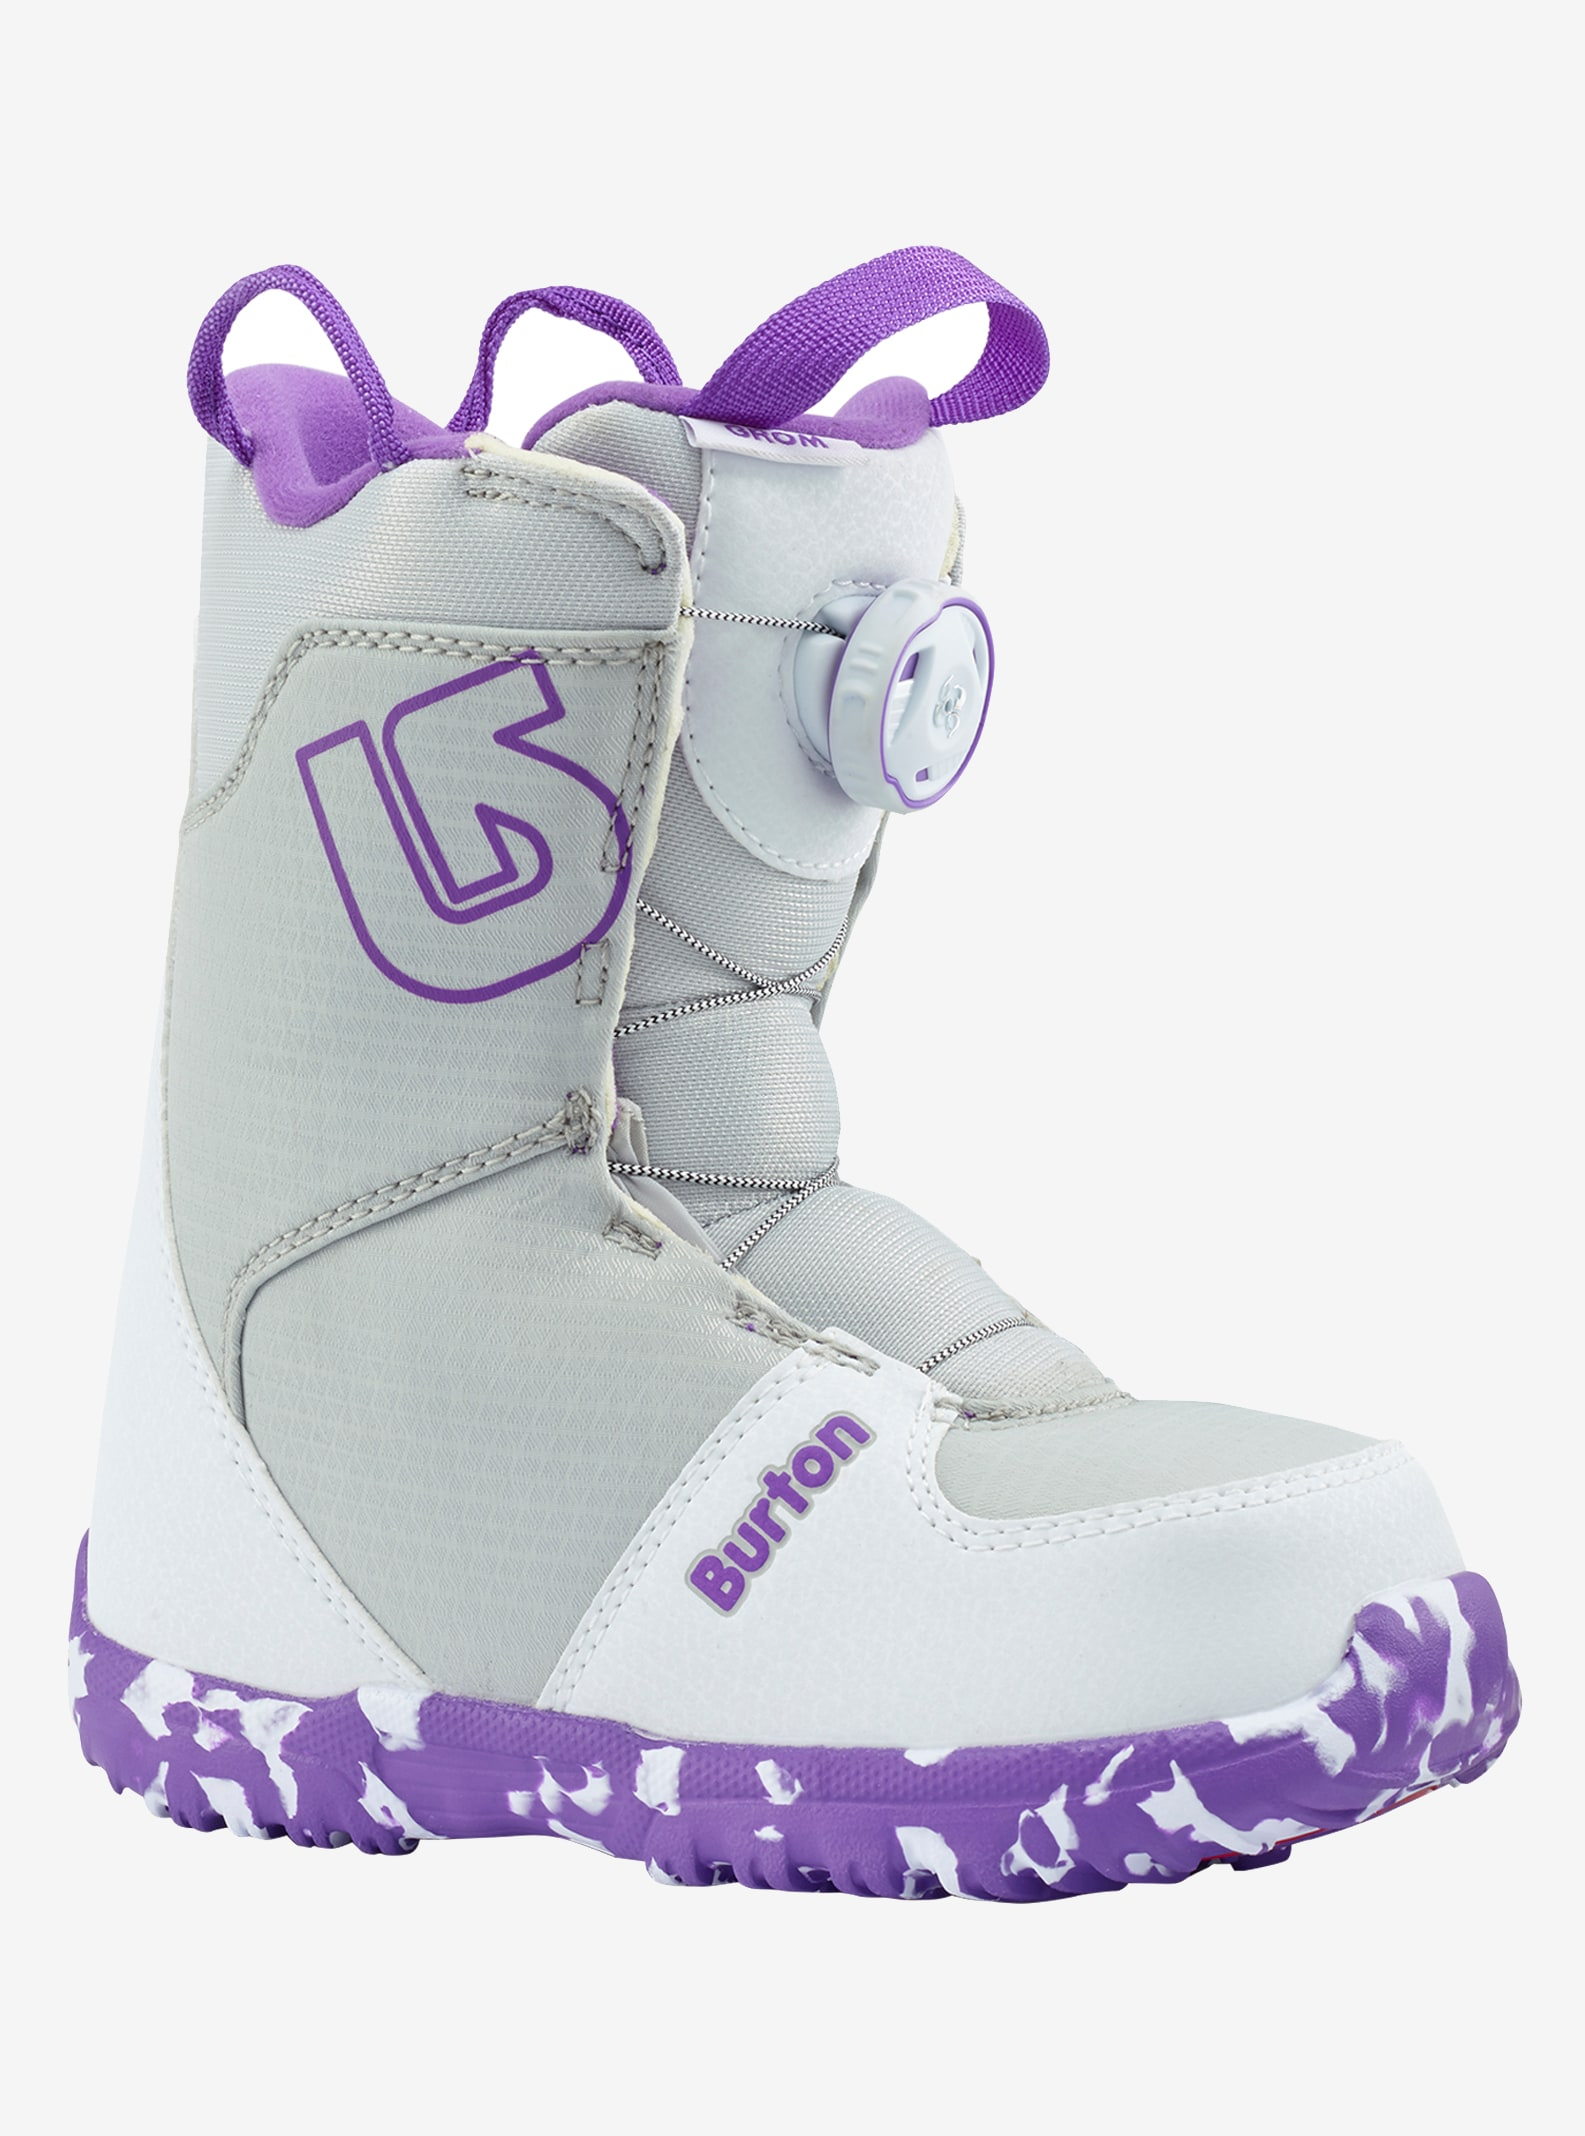 Kids' Burton Grom Boa® Snowboard Boot shown in White / Purple